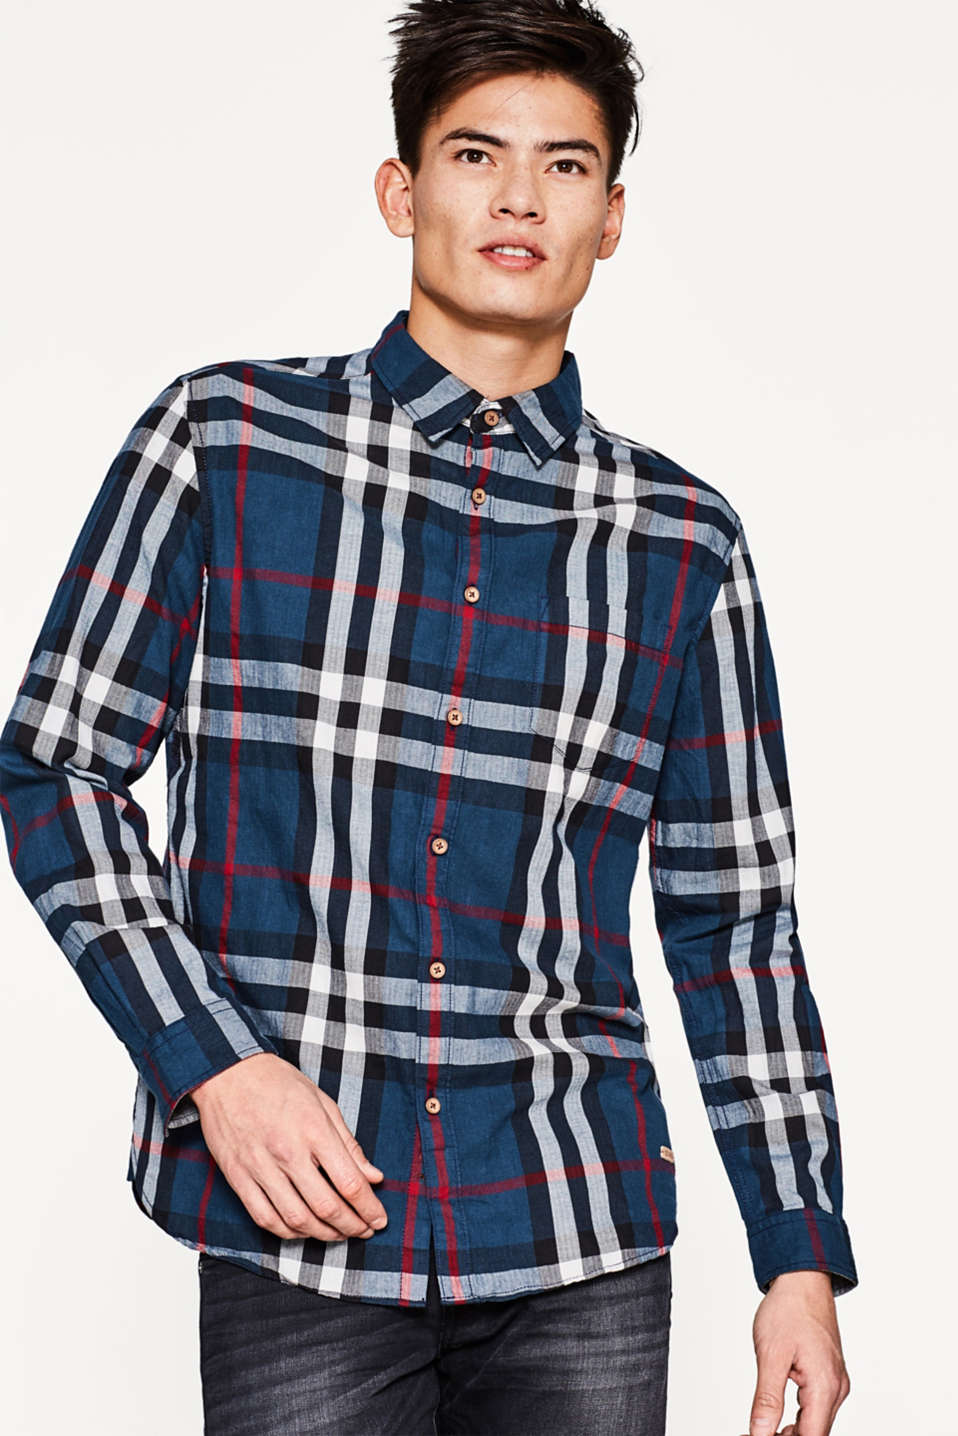 edc - Shirt with a classic check pattern